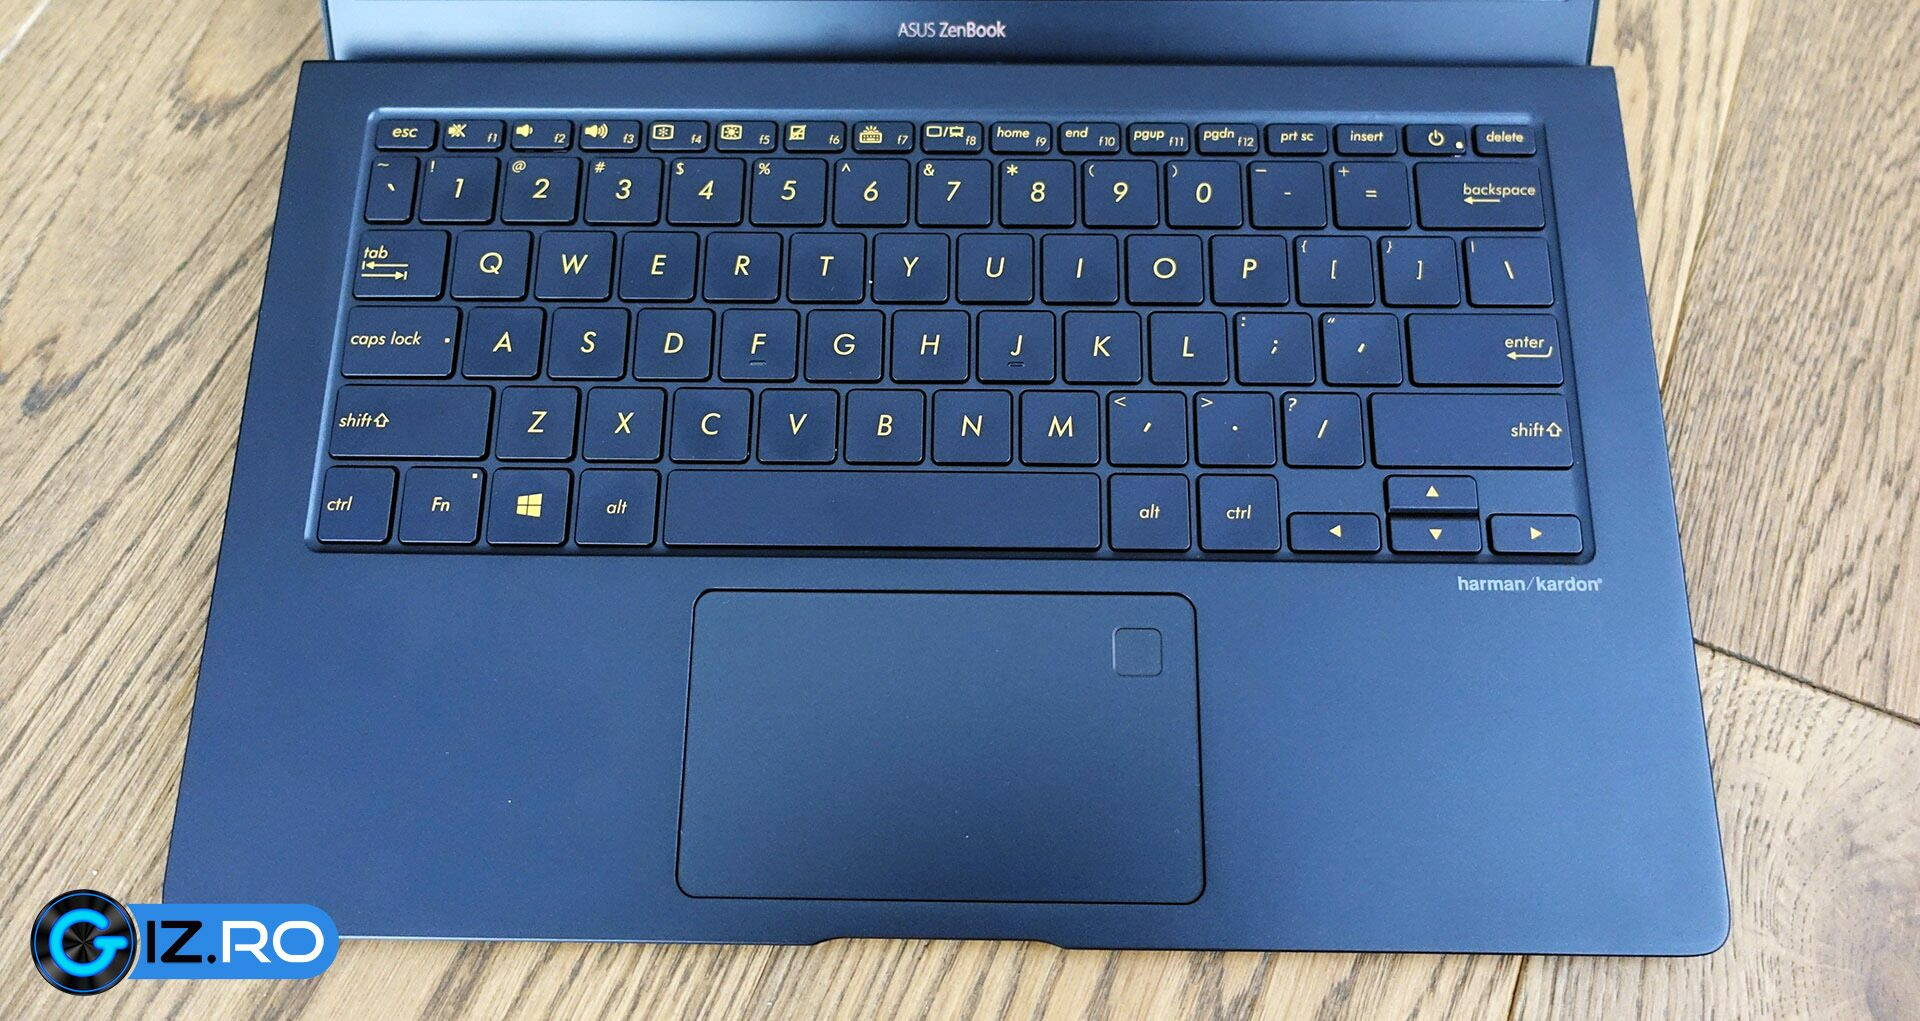 keyboard-trackpad-layout